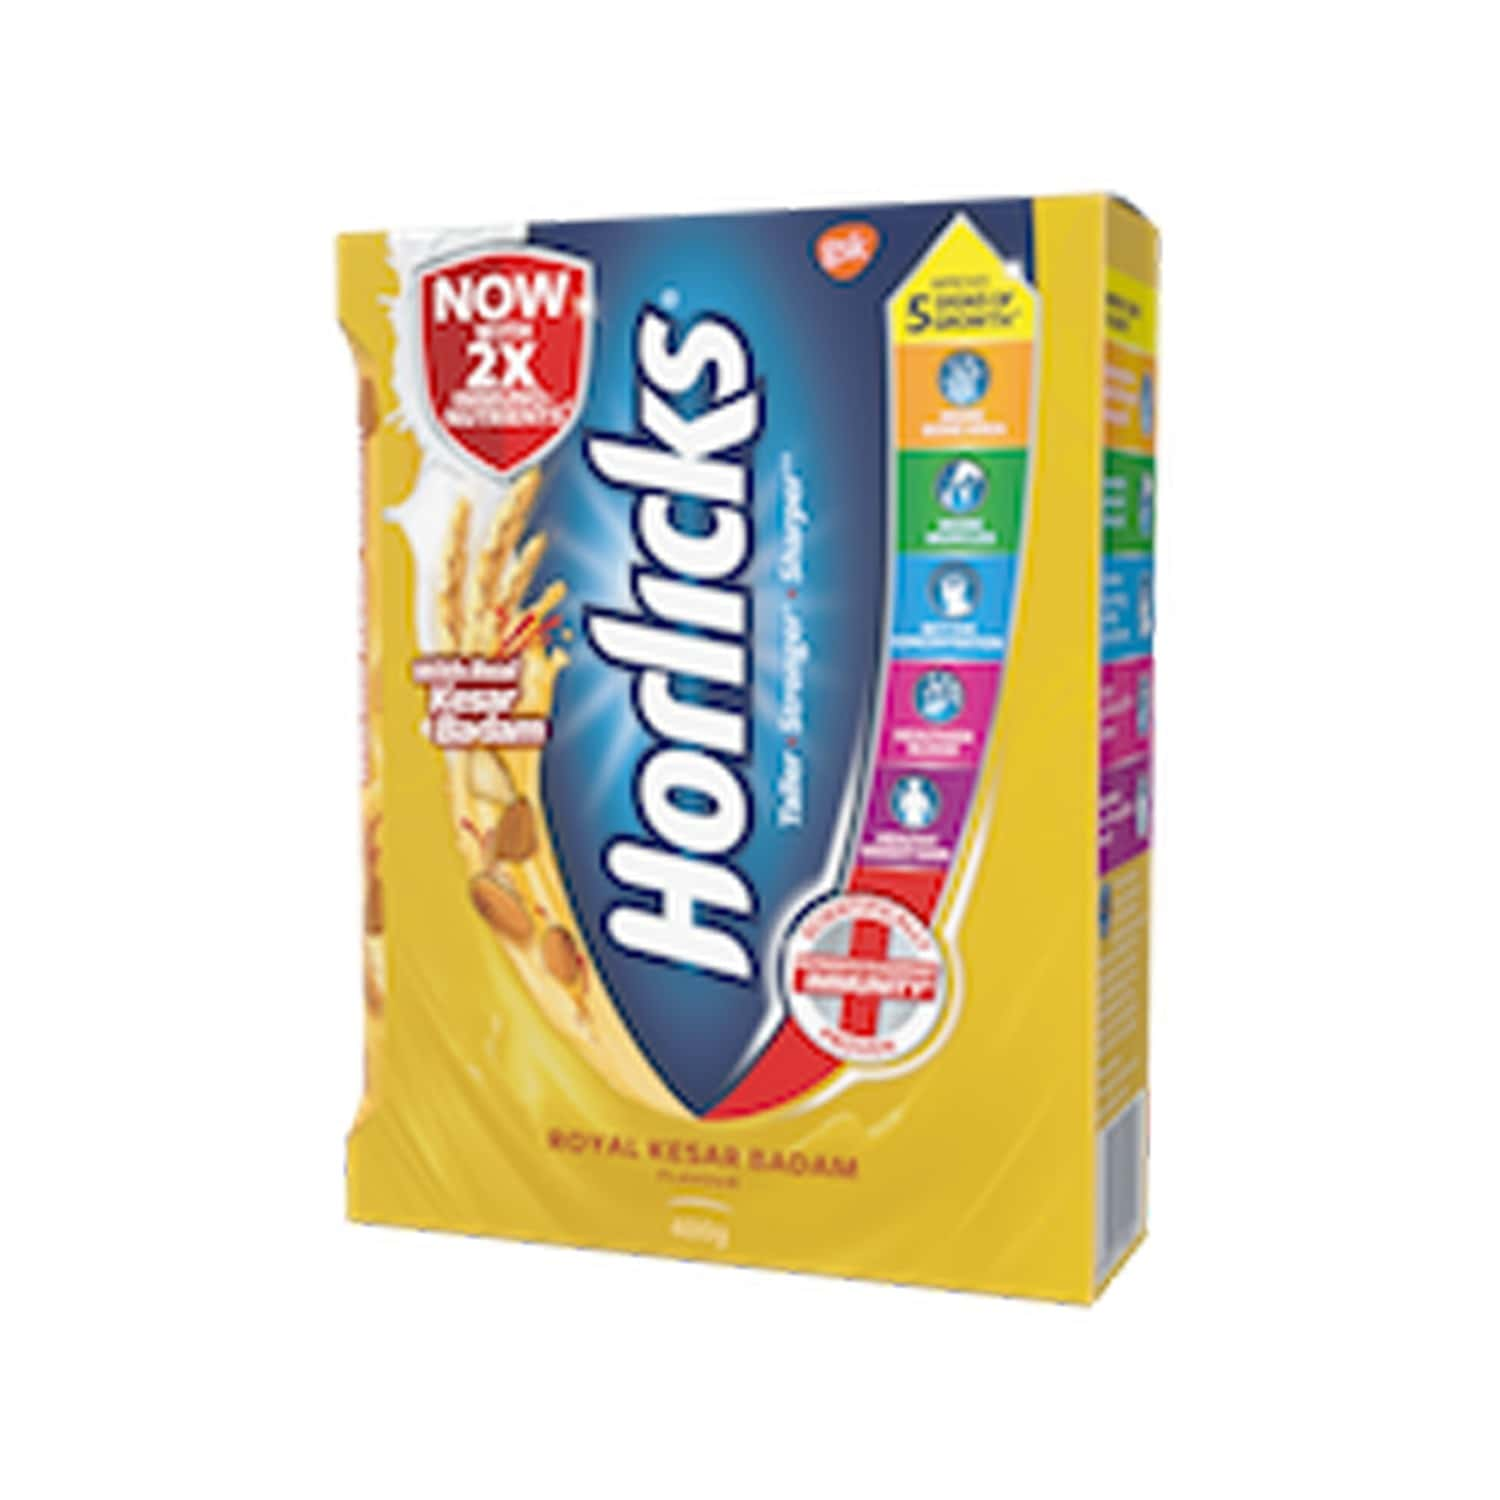 Horlicks Kesar Badam Nutrition Drink Refill Of 400 G